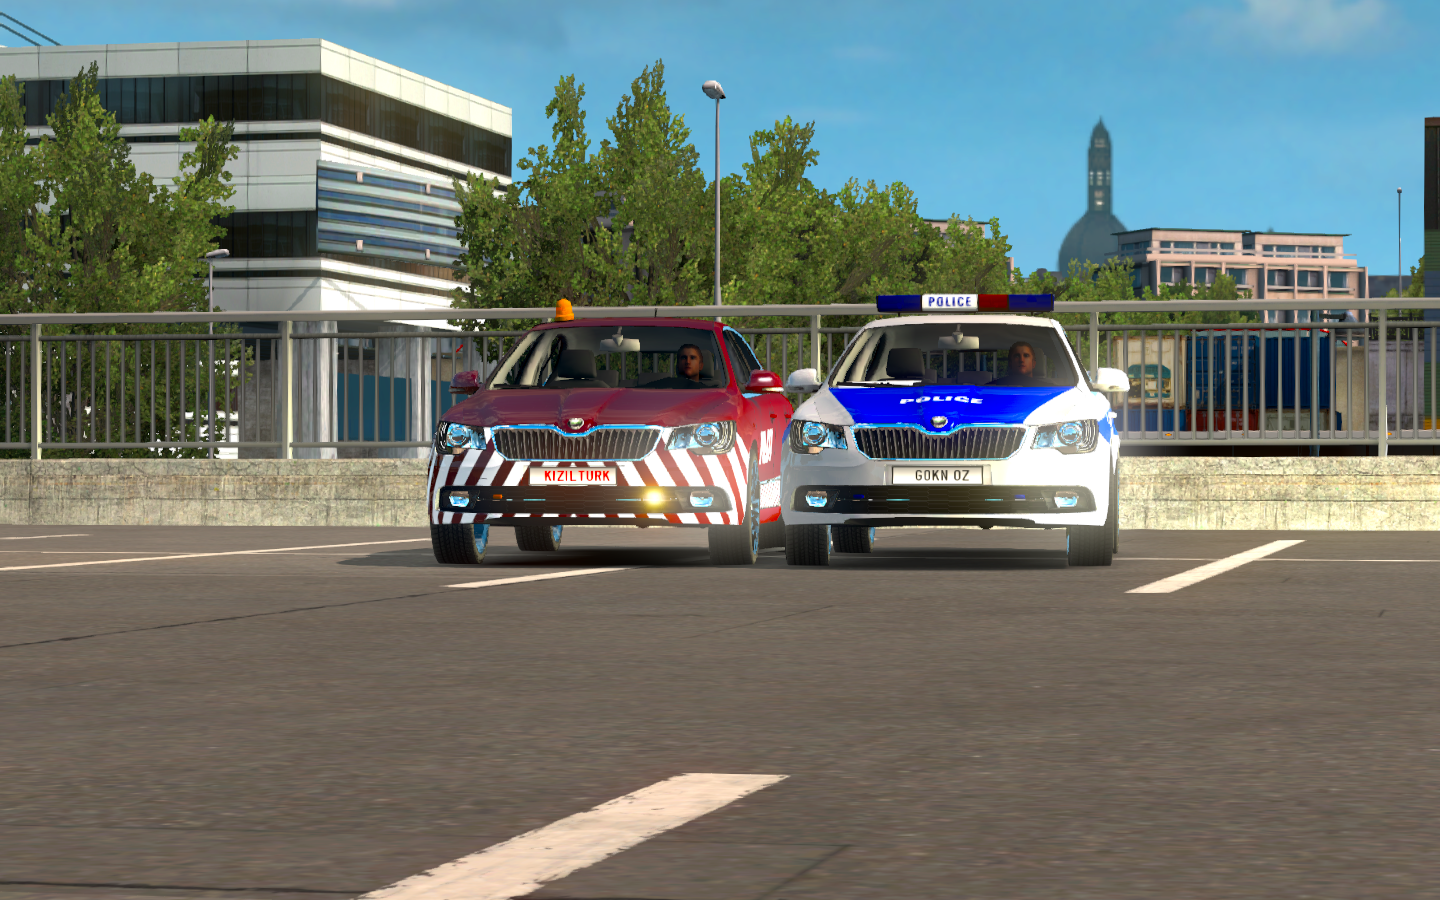 ets2_20181117_200531_00.png